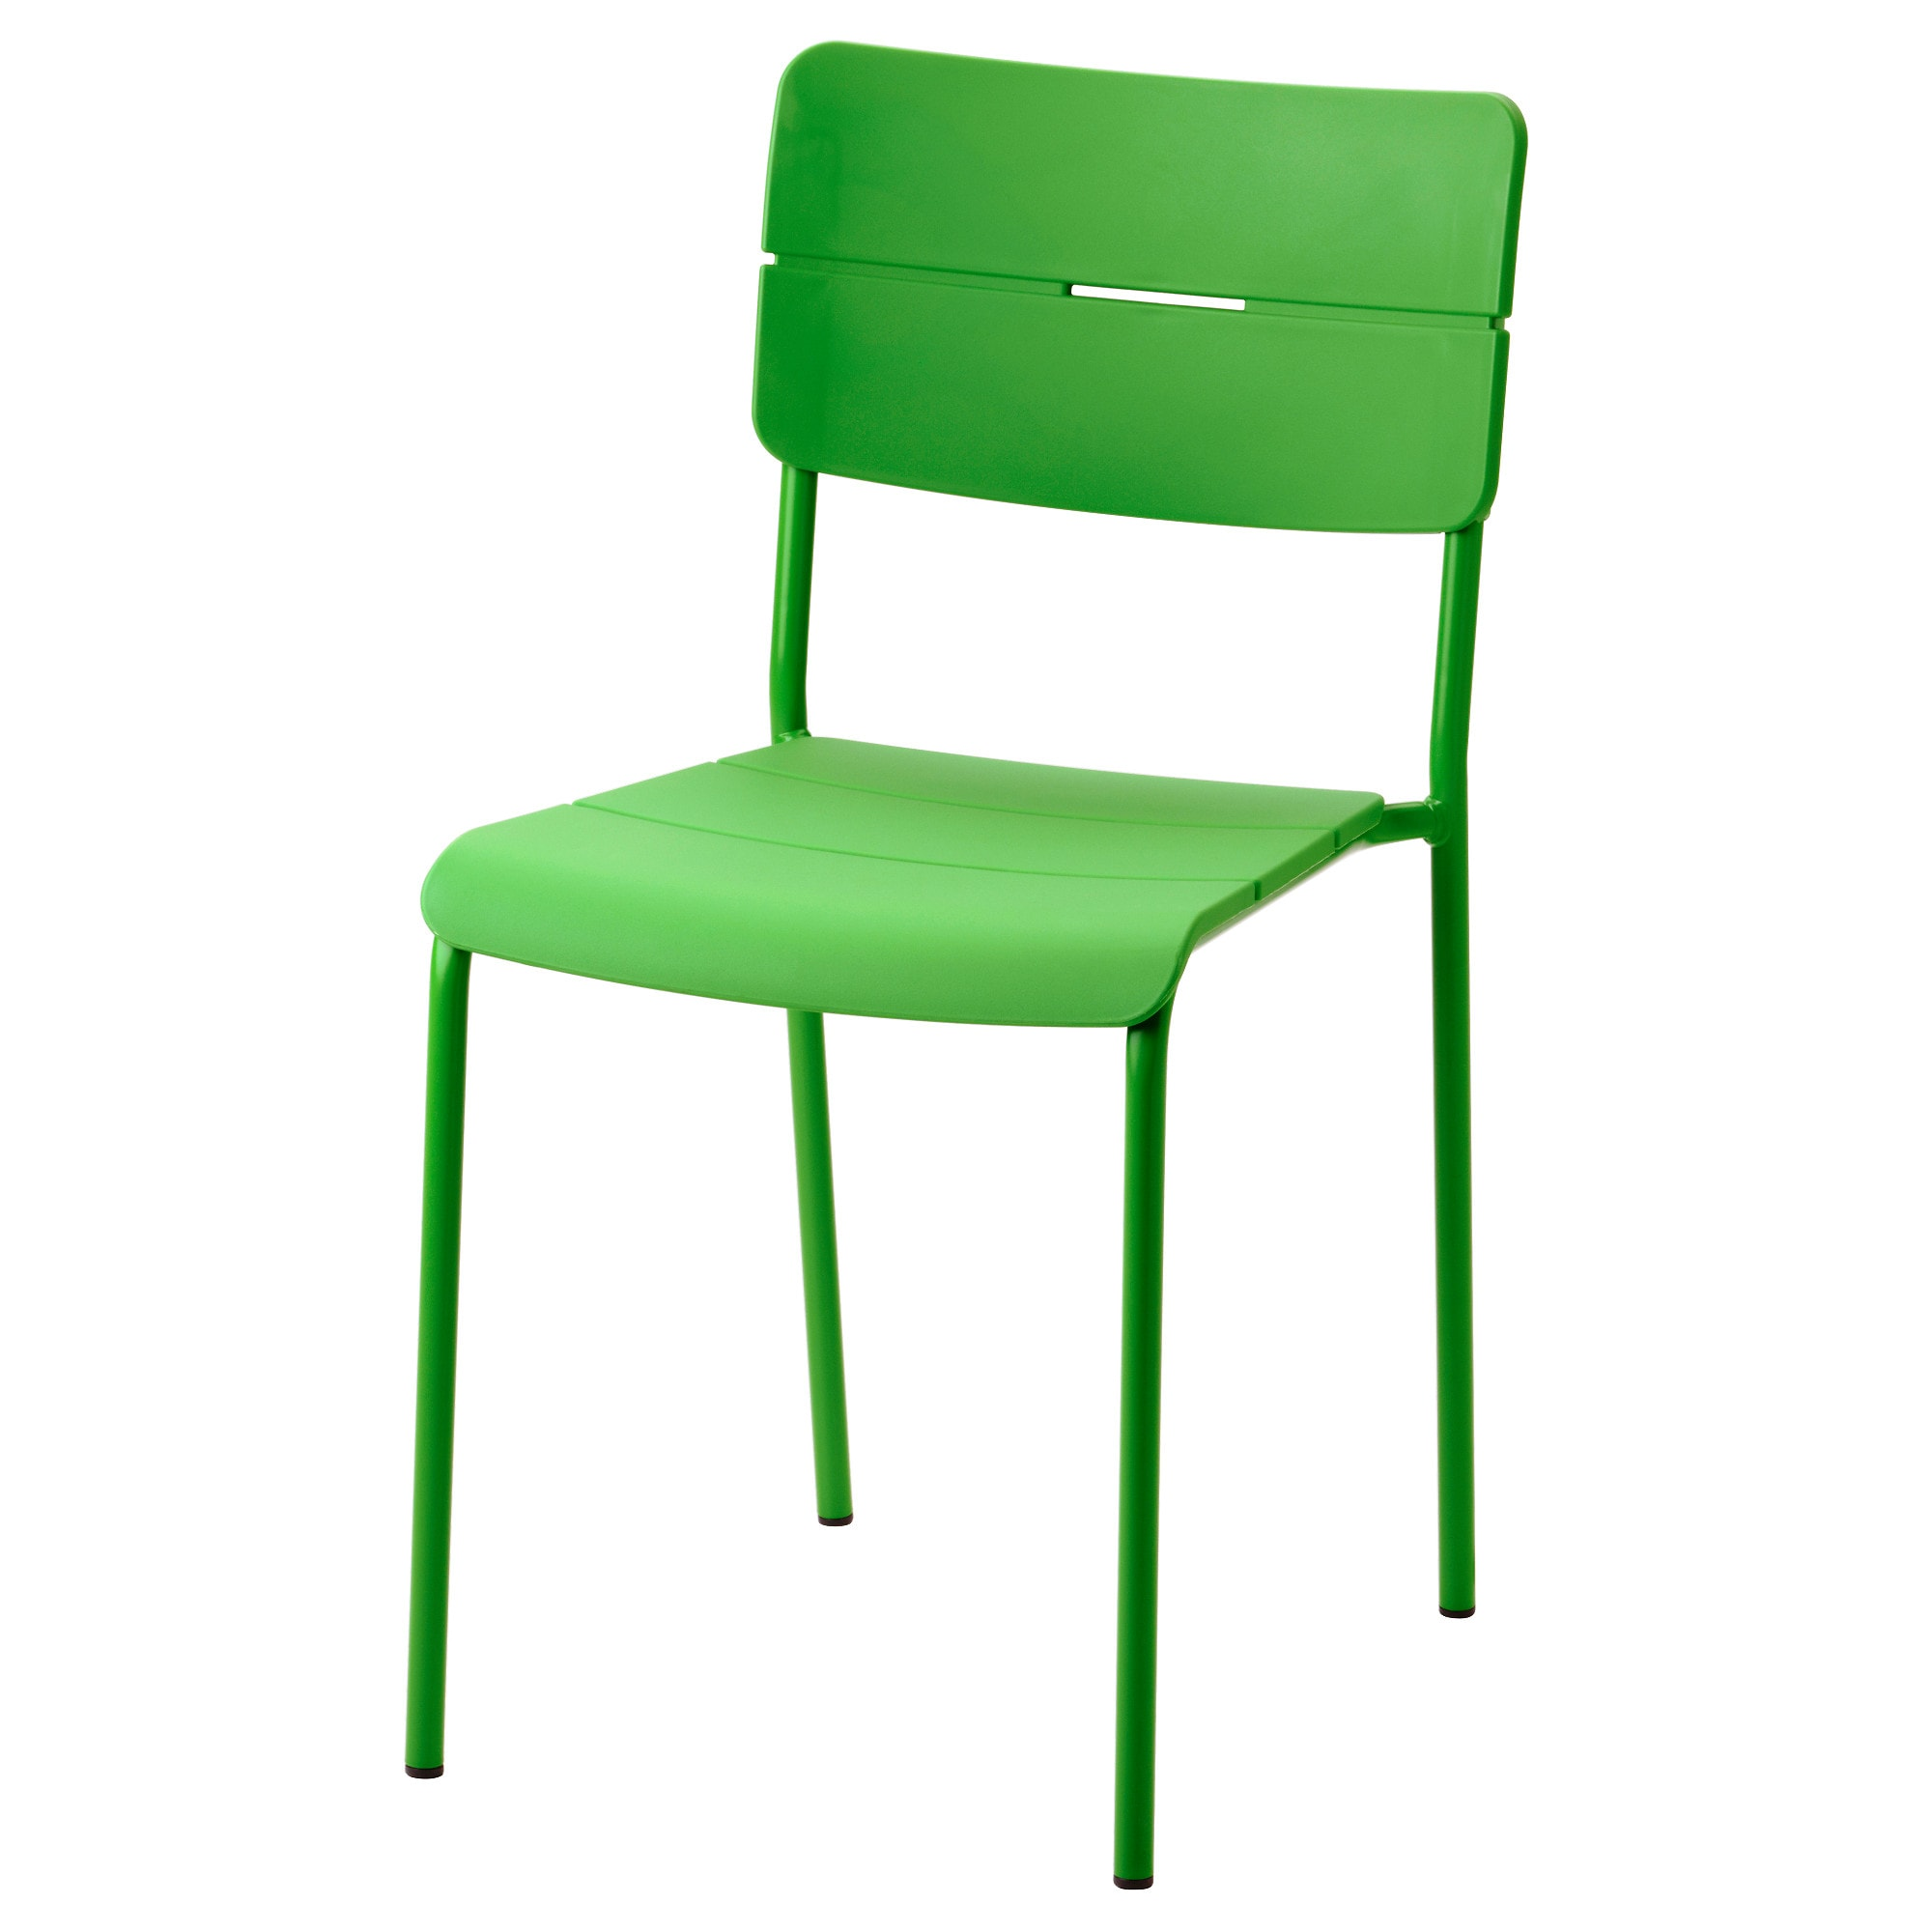 Plastic outdoor stackable chairs - Plastic Outdoor Stackable Chairs